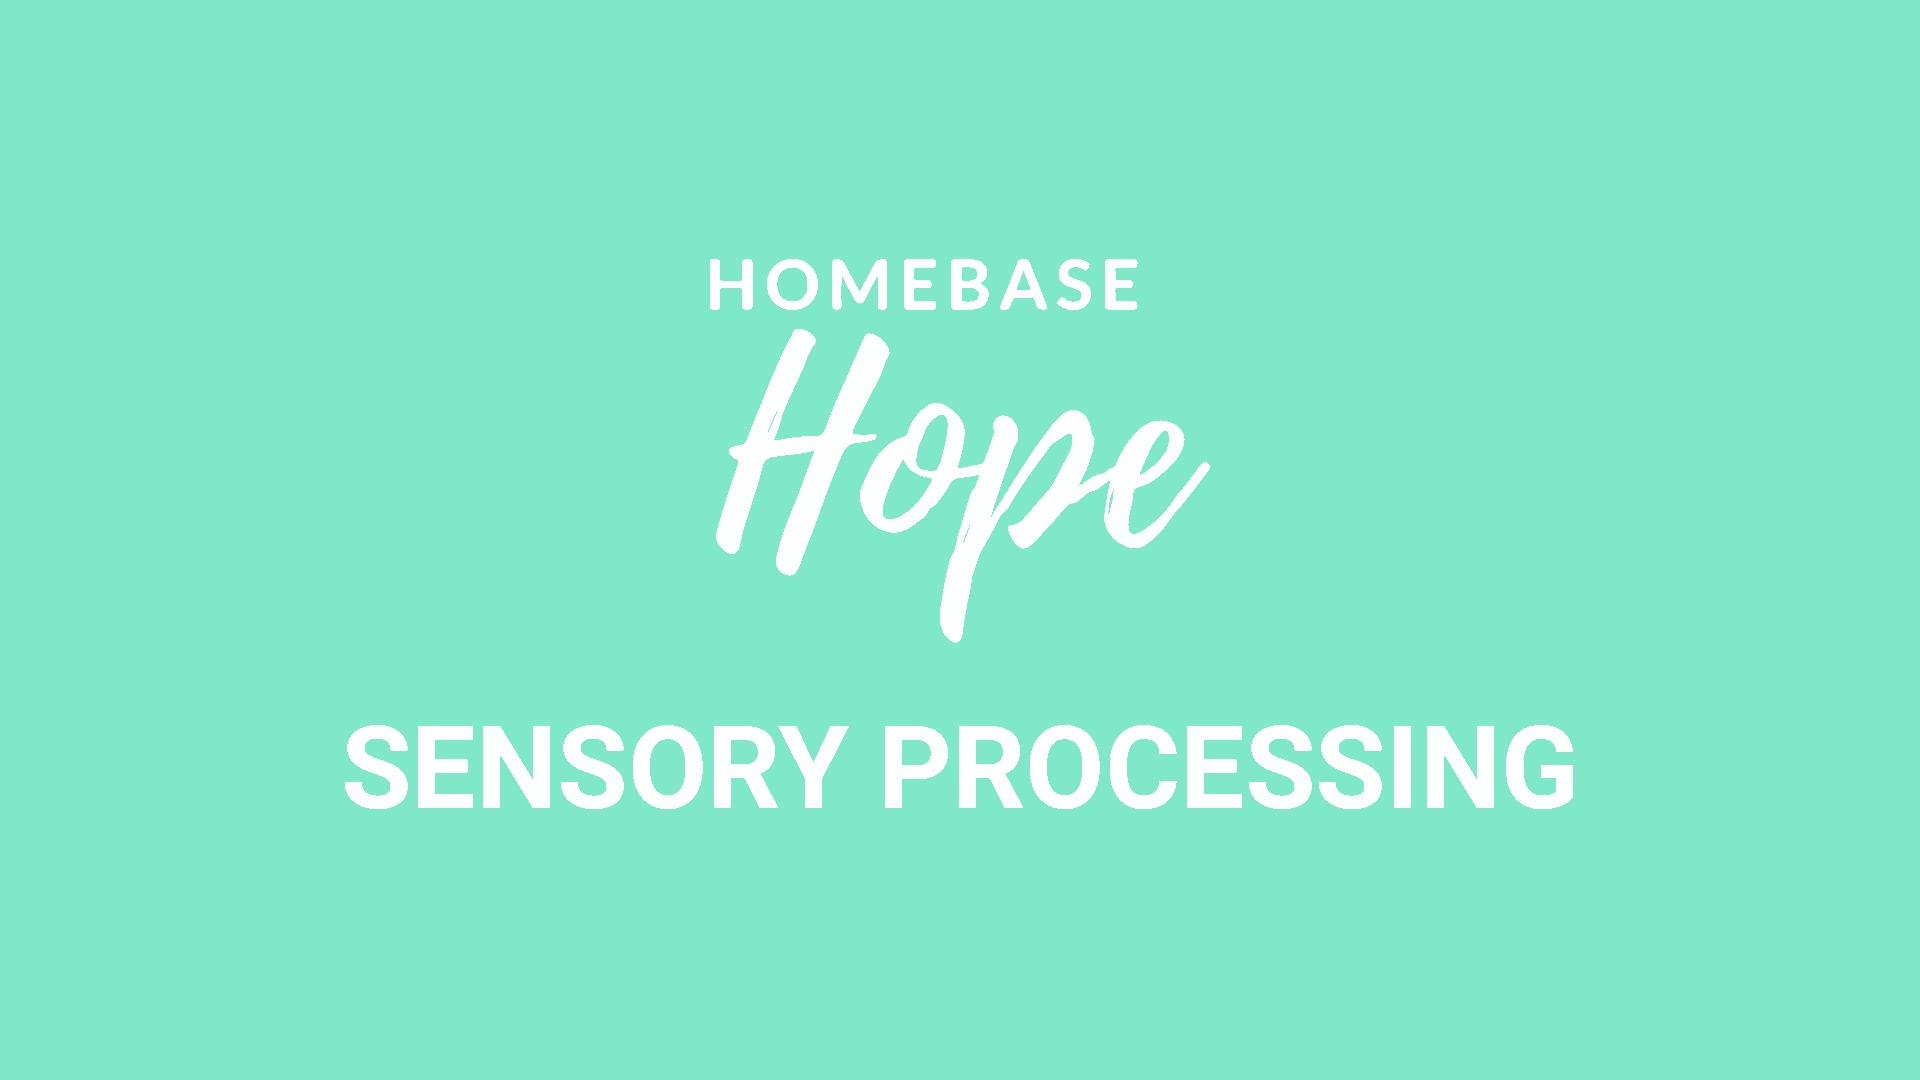 Homebase Hope Sensory Processing video explainer